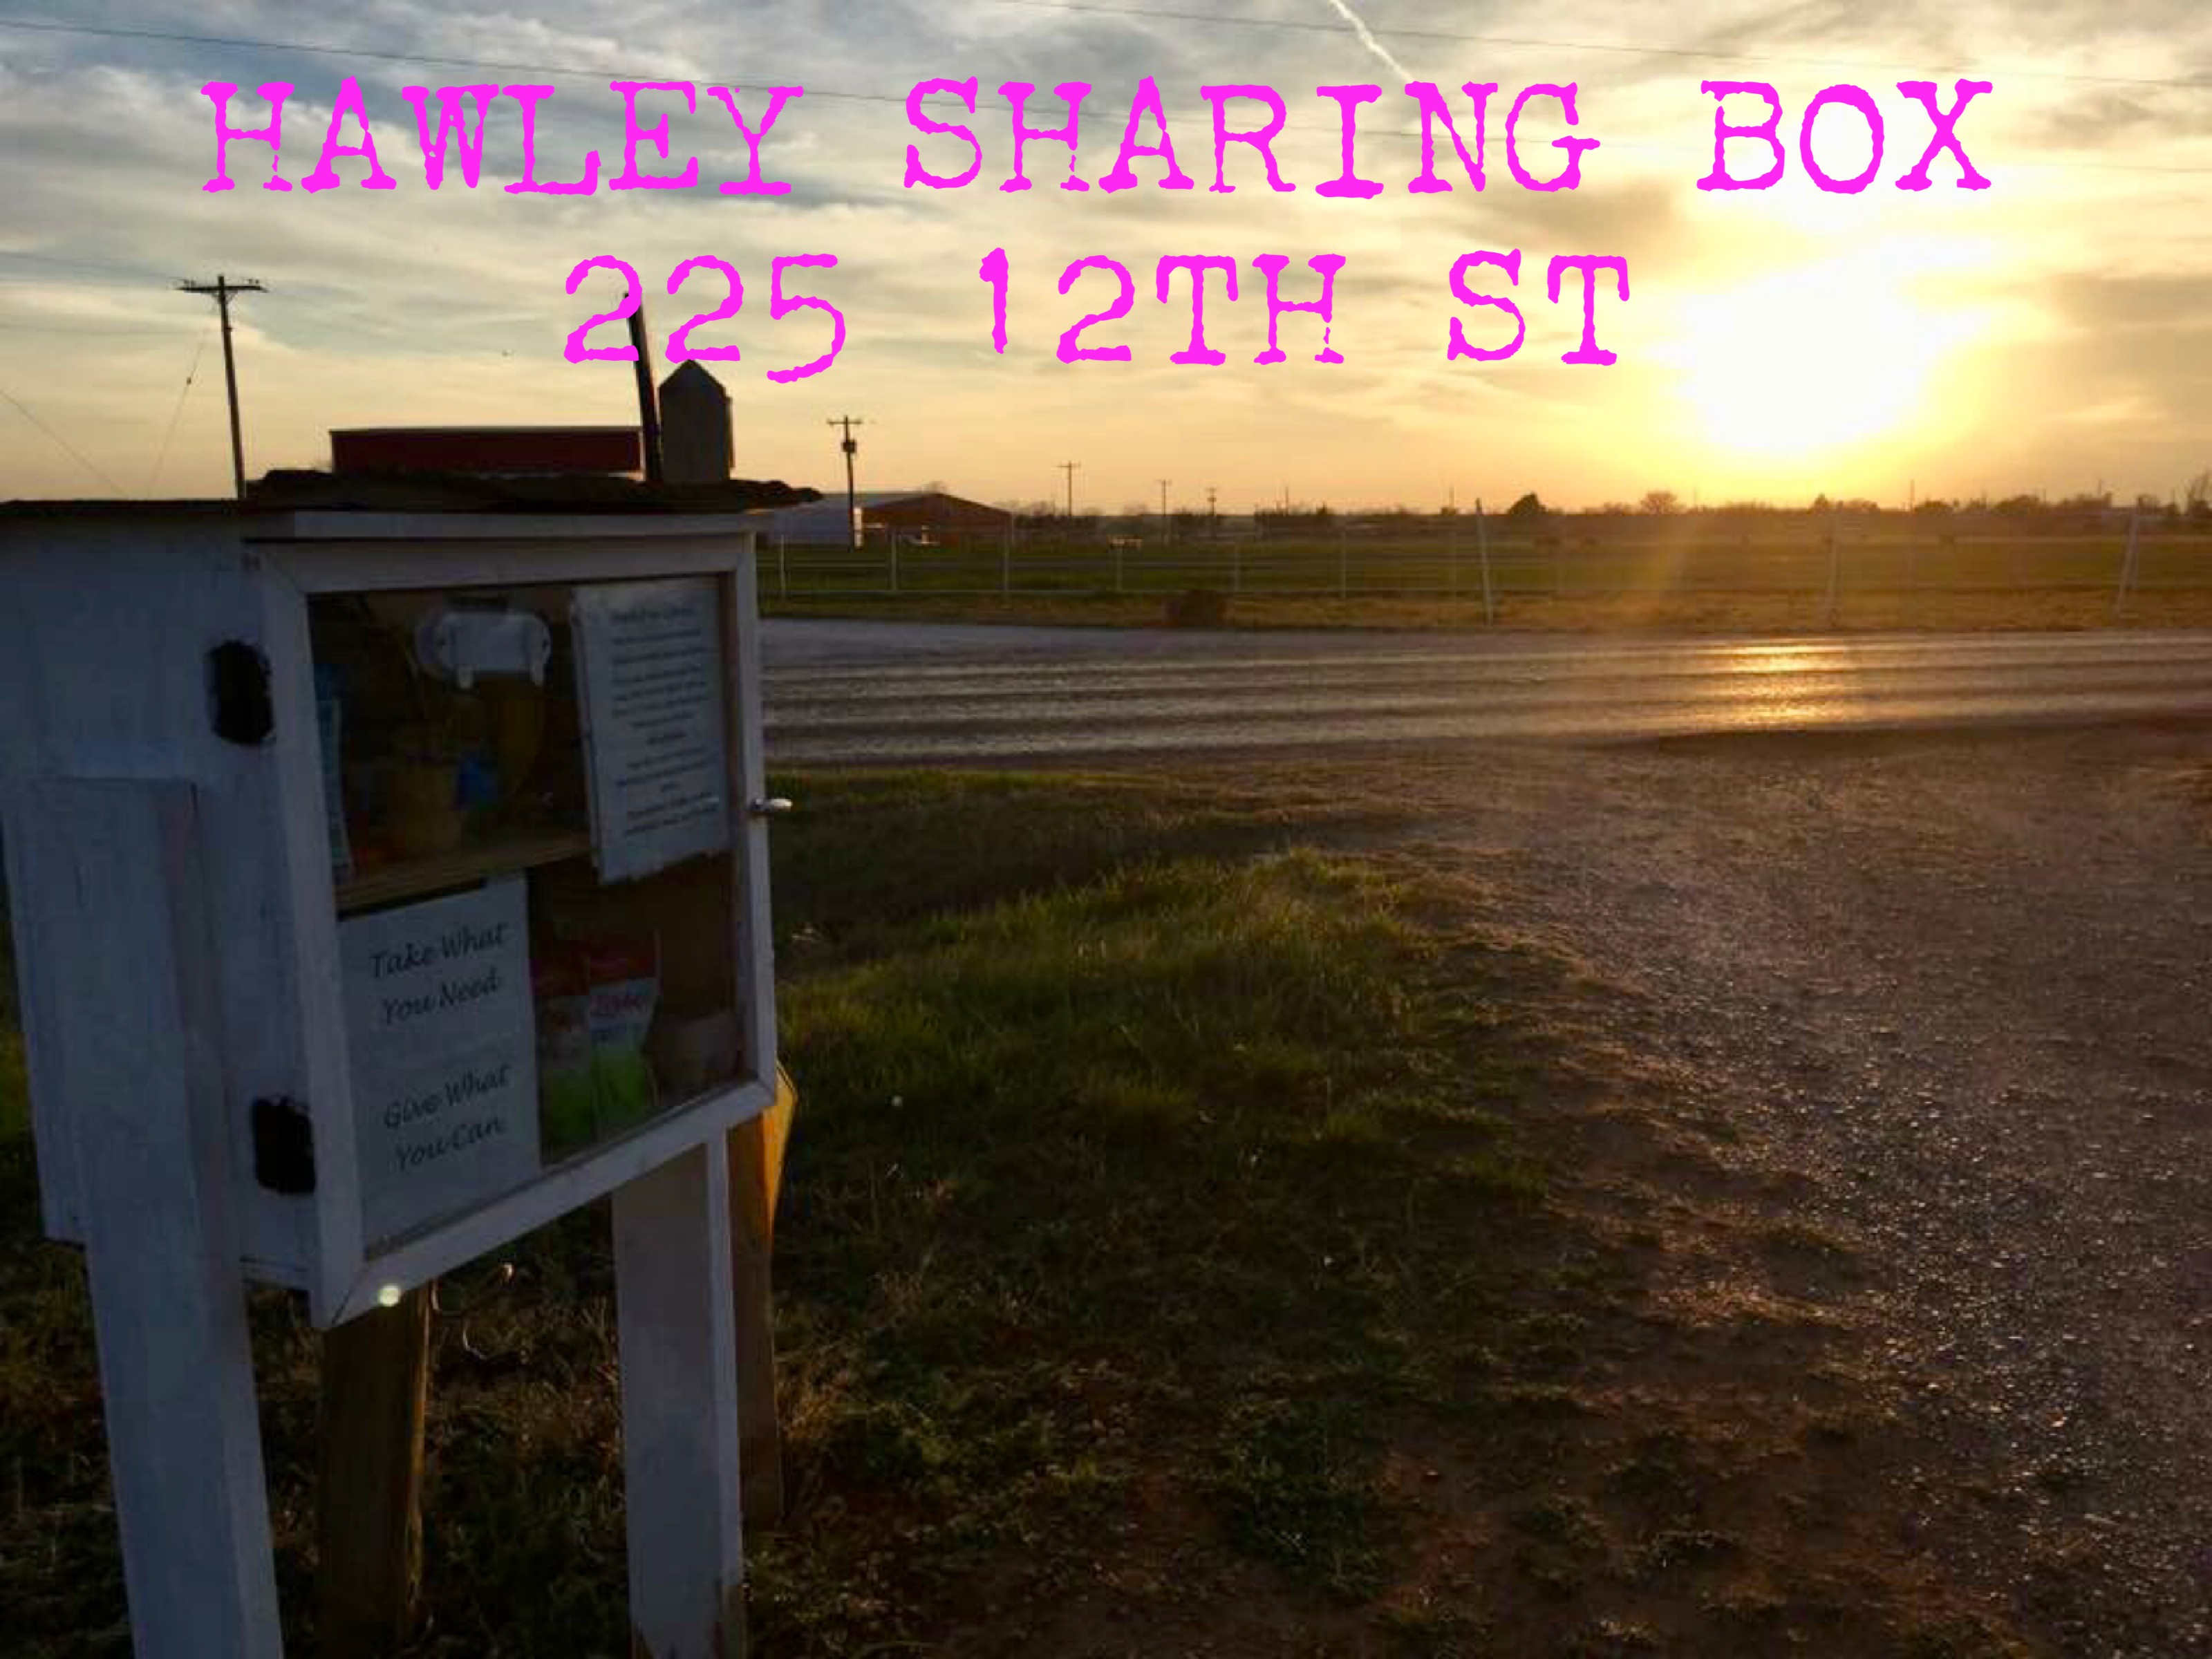 Hawley Sharing Box Photo 2